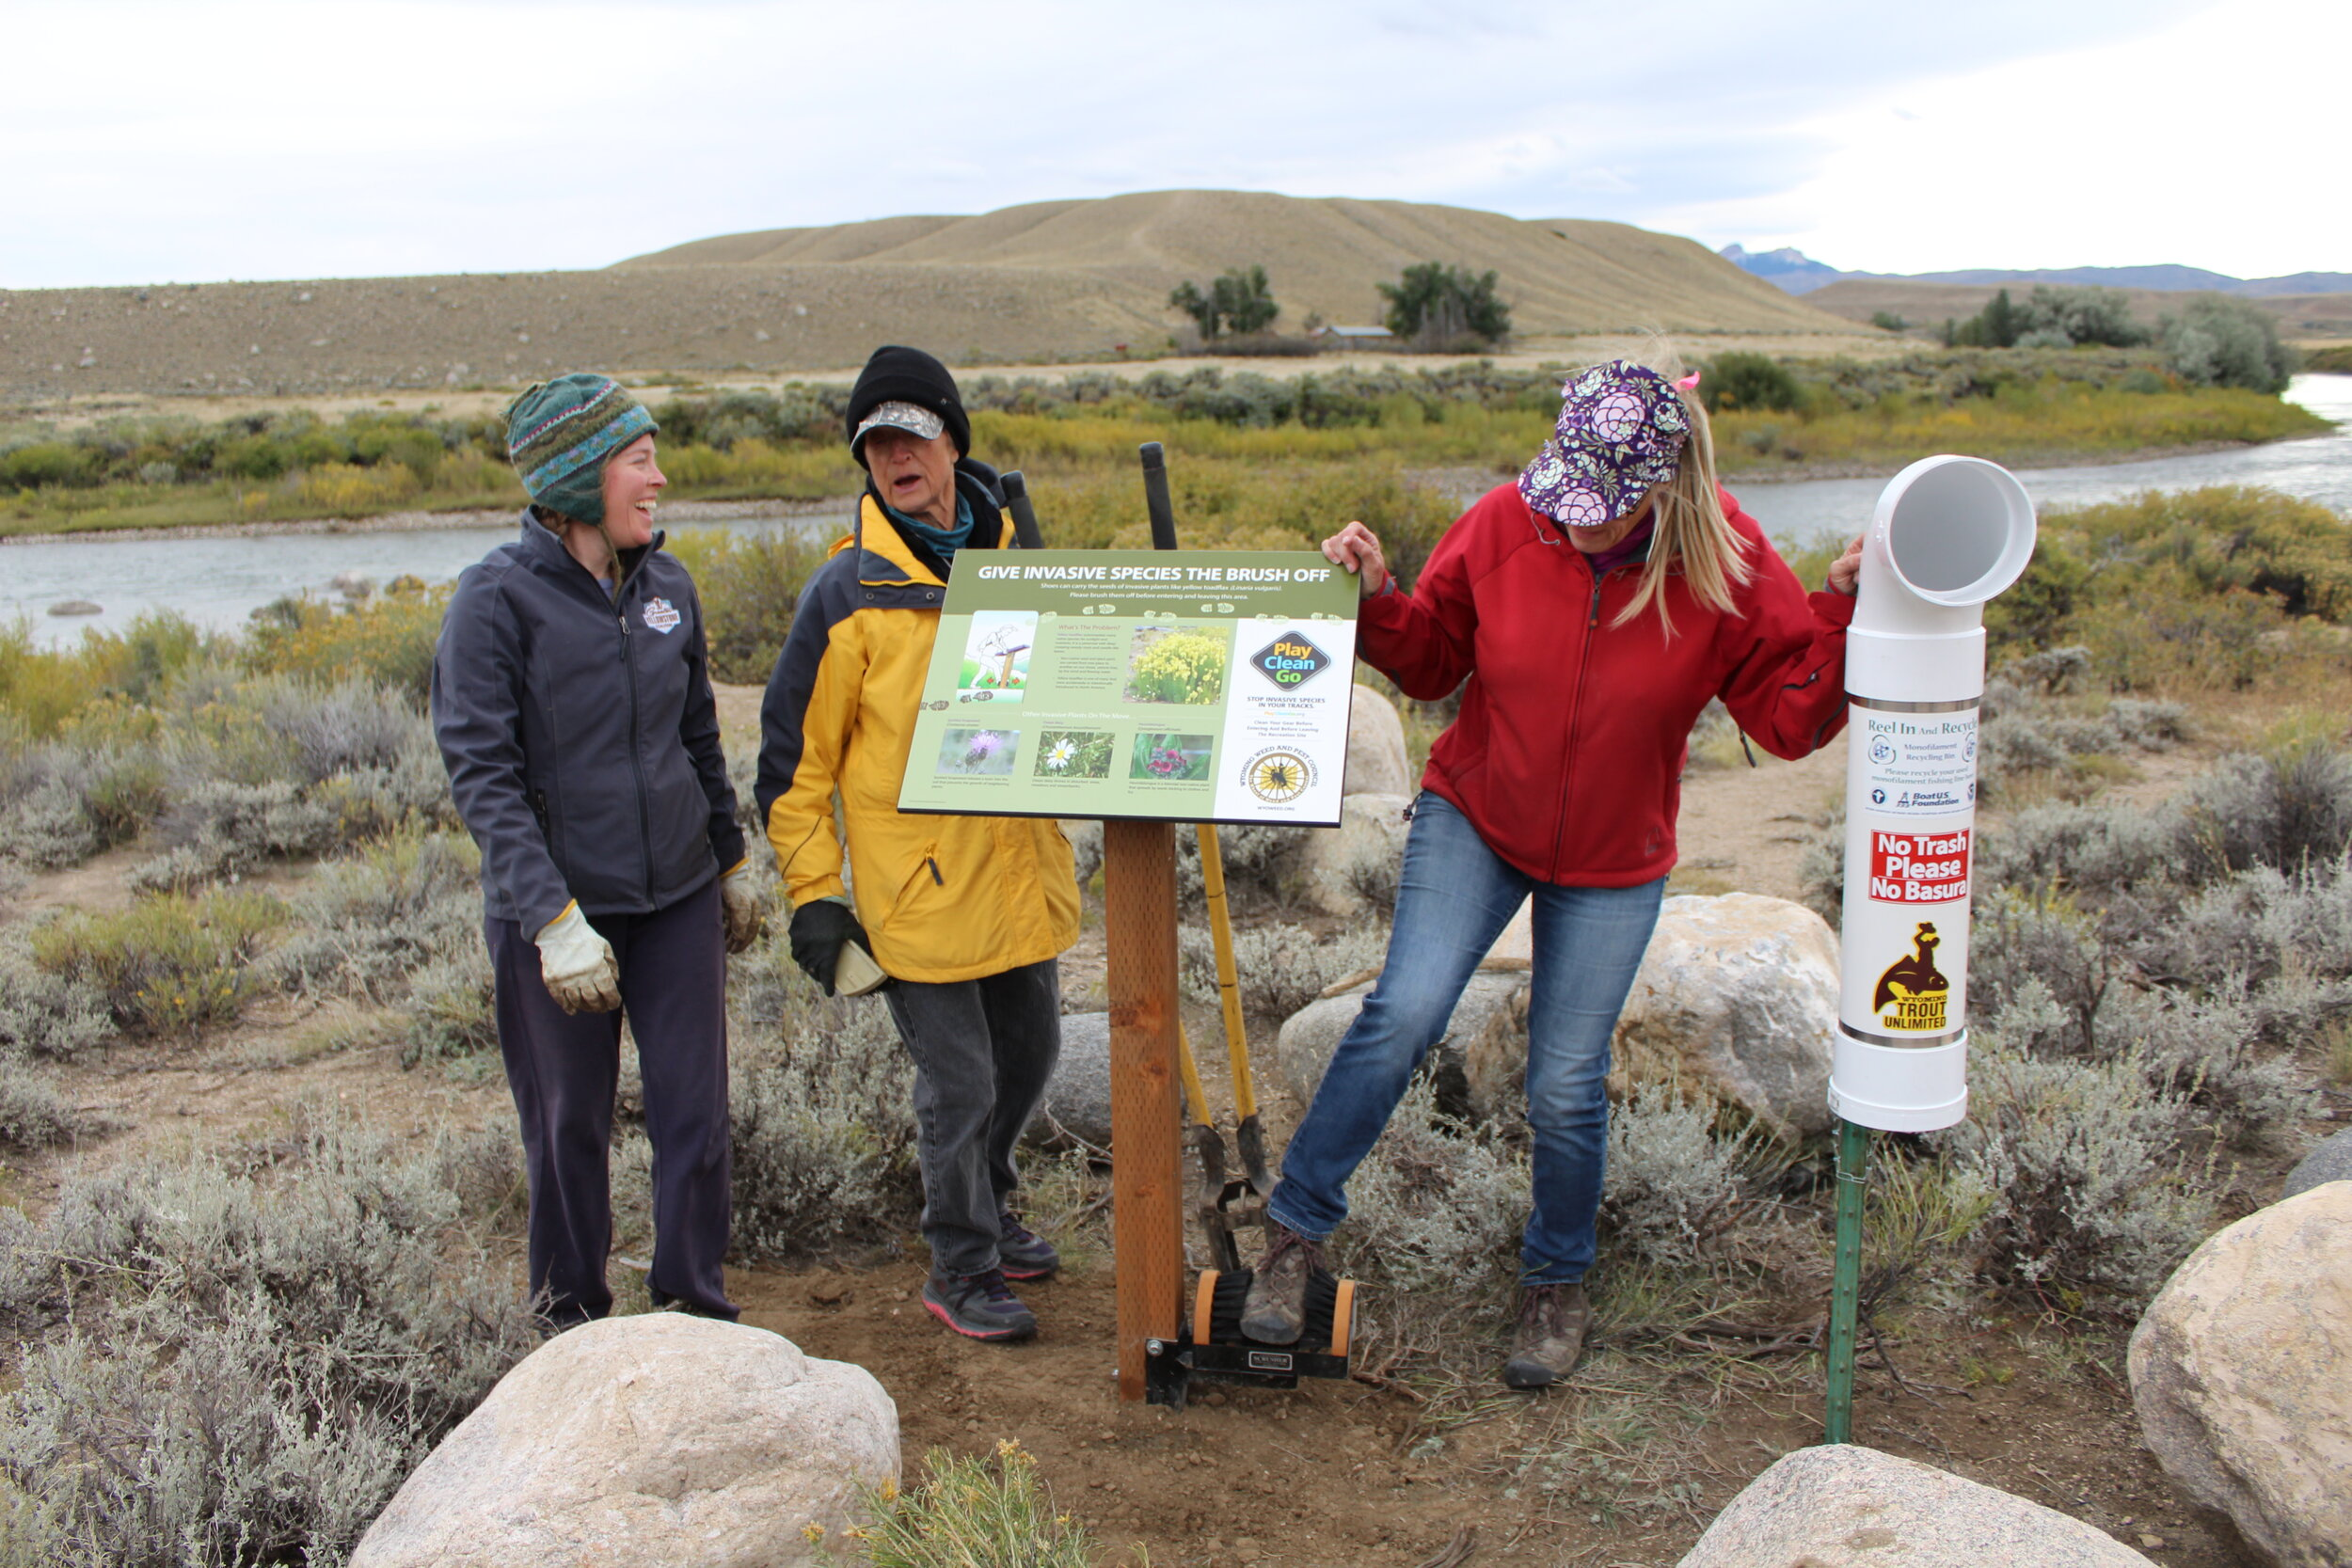 Volunteers celebrate Wyoming's Public Lands Day by installing an invasive plant information sign and boot brush. (Photo GYC/Emily Reed.)